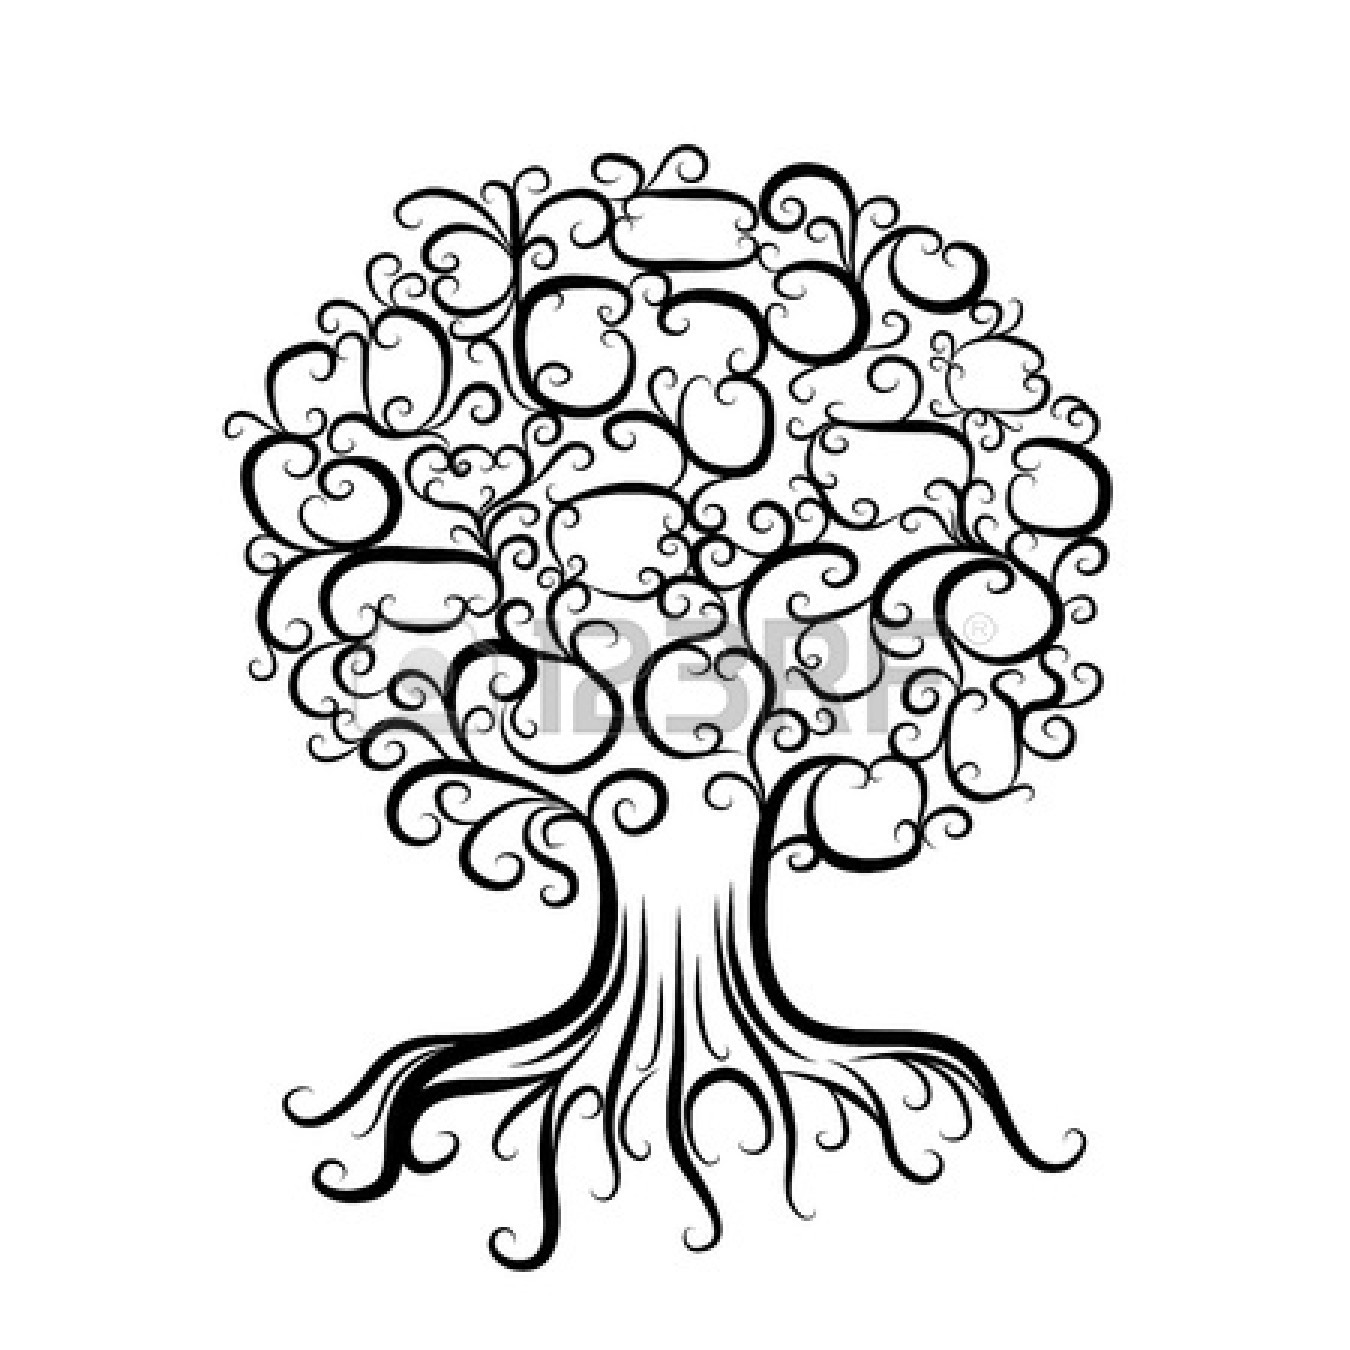 1350x1350 Ornamental Tree With Roots For Your Design Vector Desen Boyama